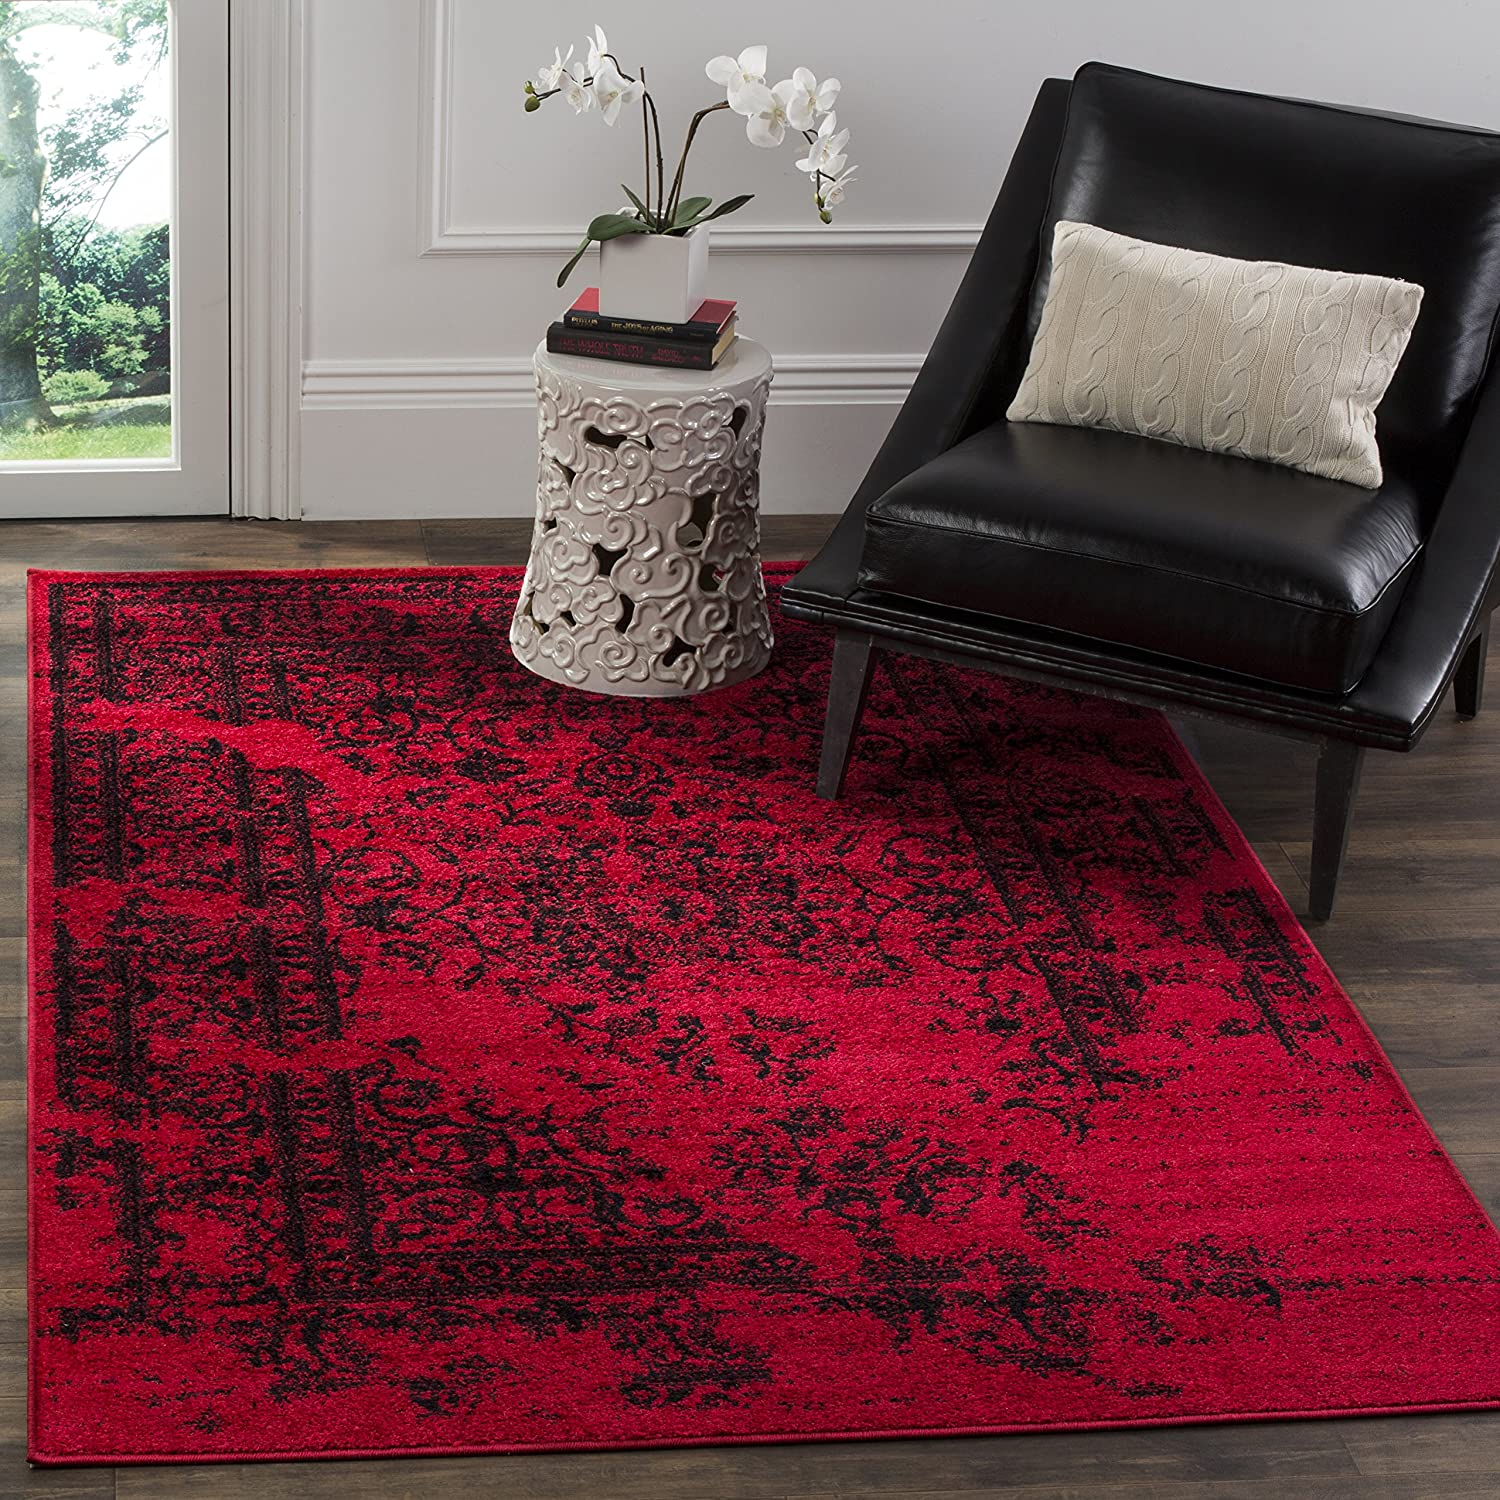 Amazon com safavieh adirondack collection adr101f red and black oriental vintage distressed area rug 51 x 76 kitchen dining